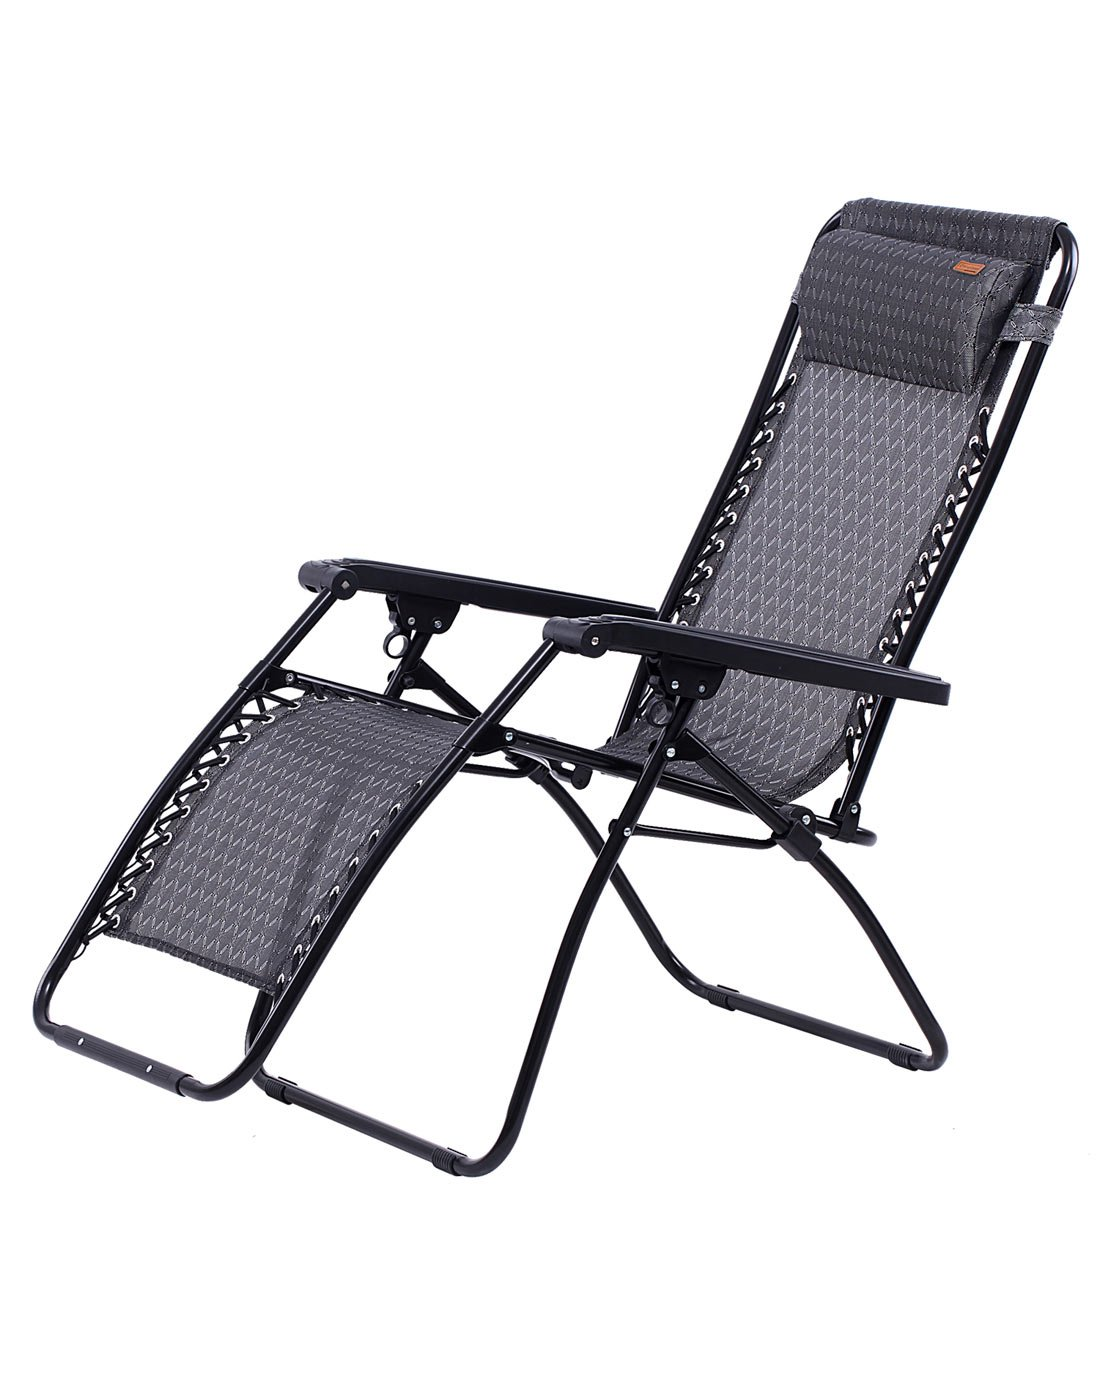 KingCamp Zero Gravity Lounger Patio Chair Textilene Folding Reclining Oversized Free-Adjustable with Headrest Pillow for Garden Outdoor Yard Beach Support 264lbs